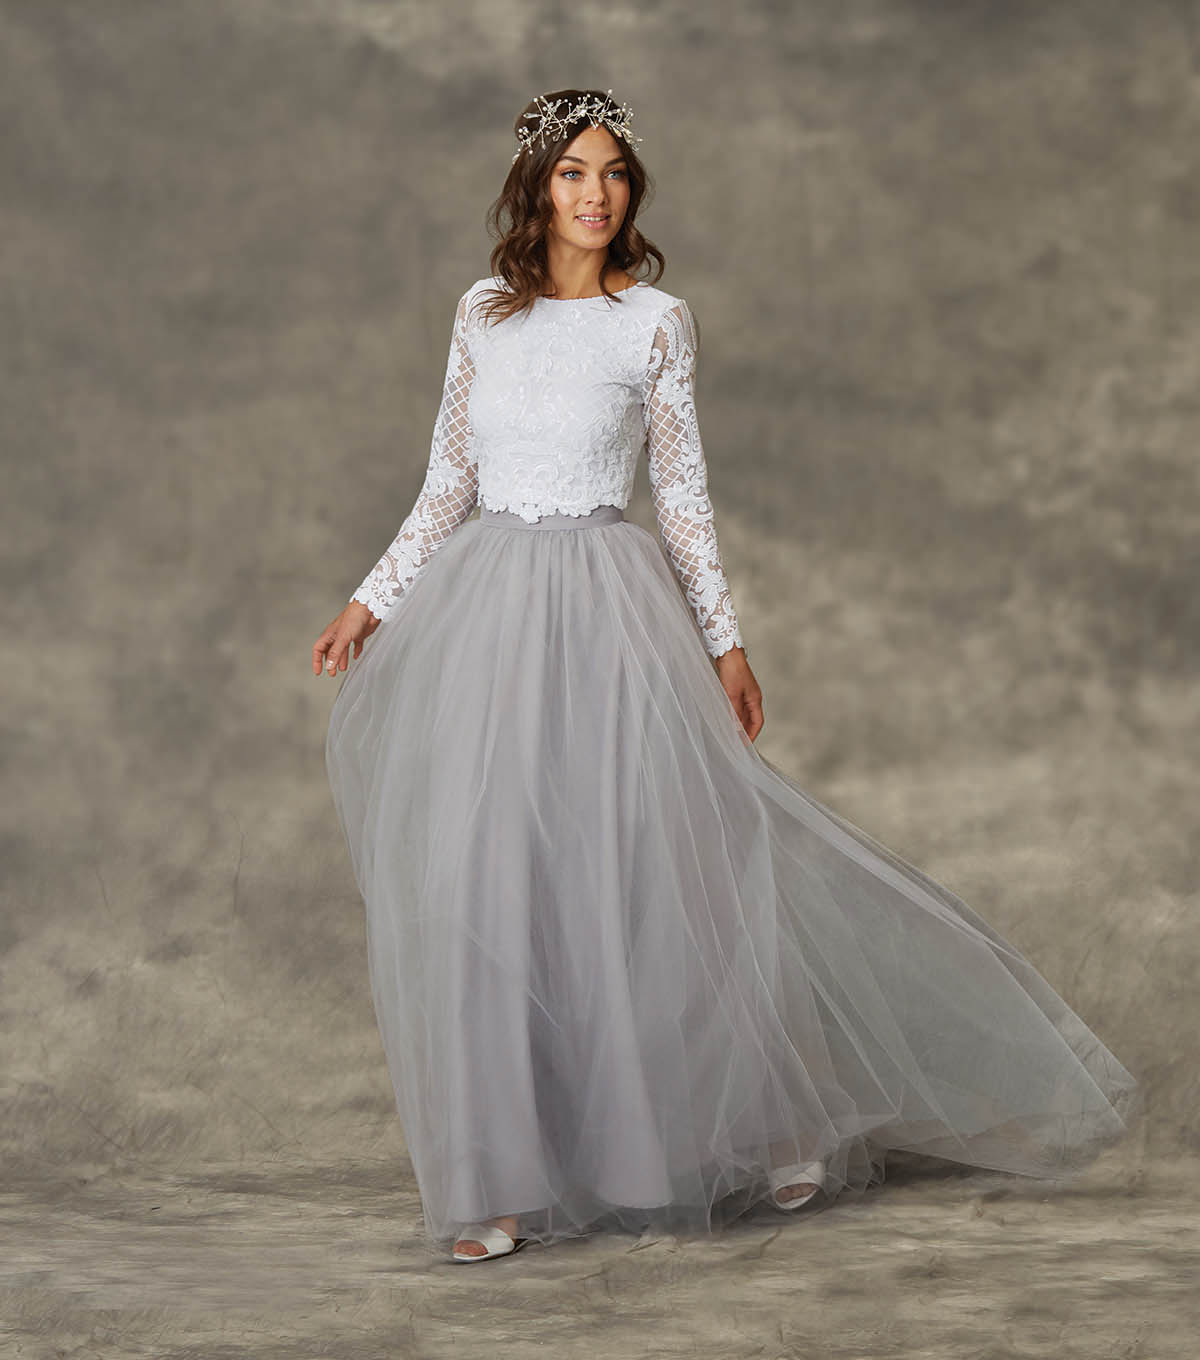 How To Make a Grey Tulle 2 piece Wedding Dress